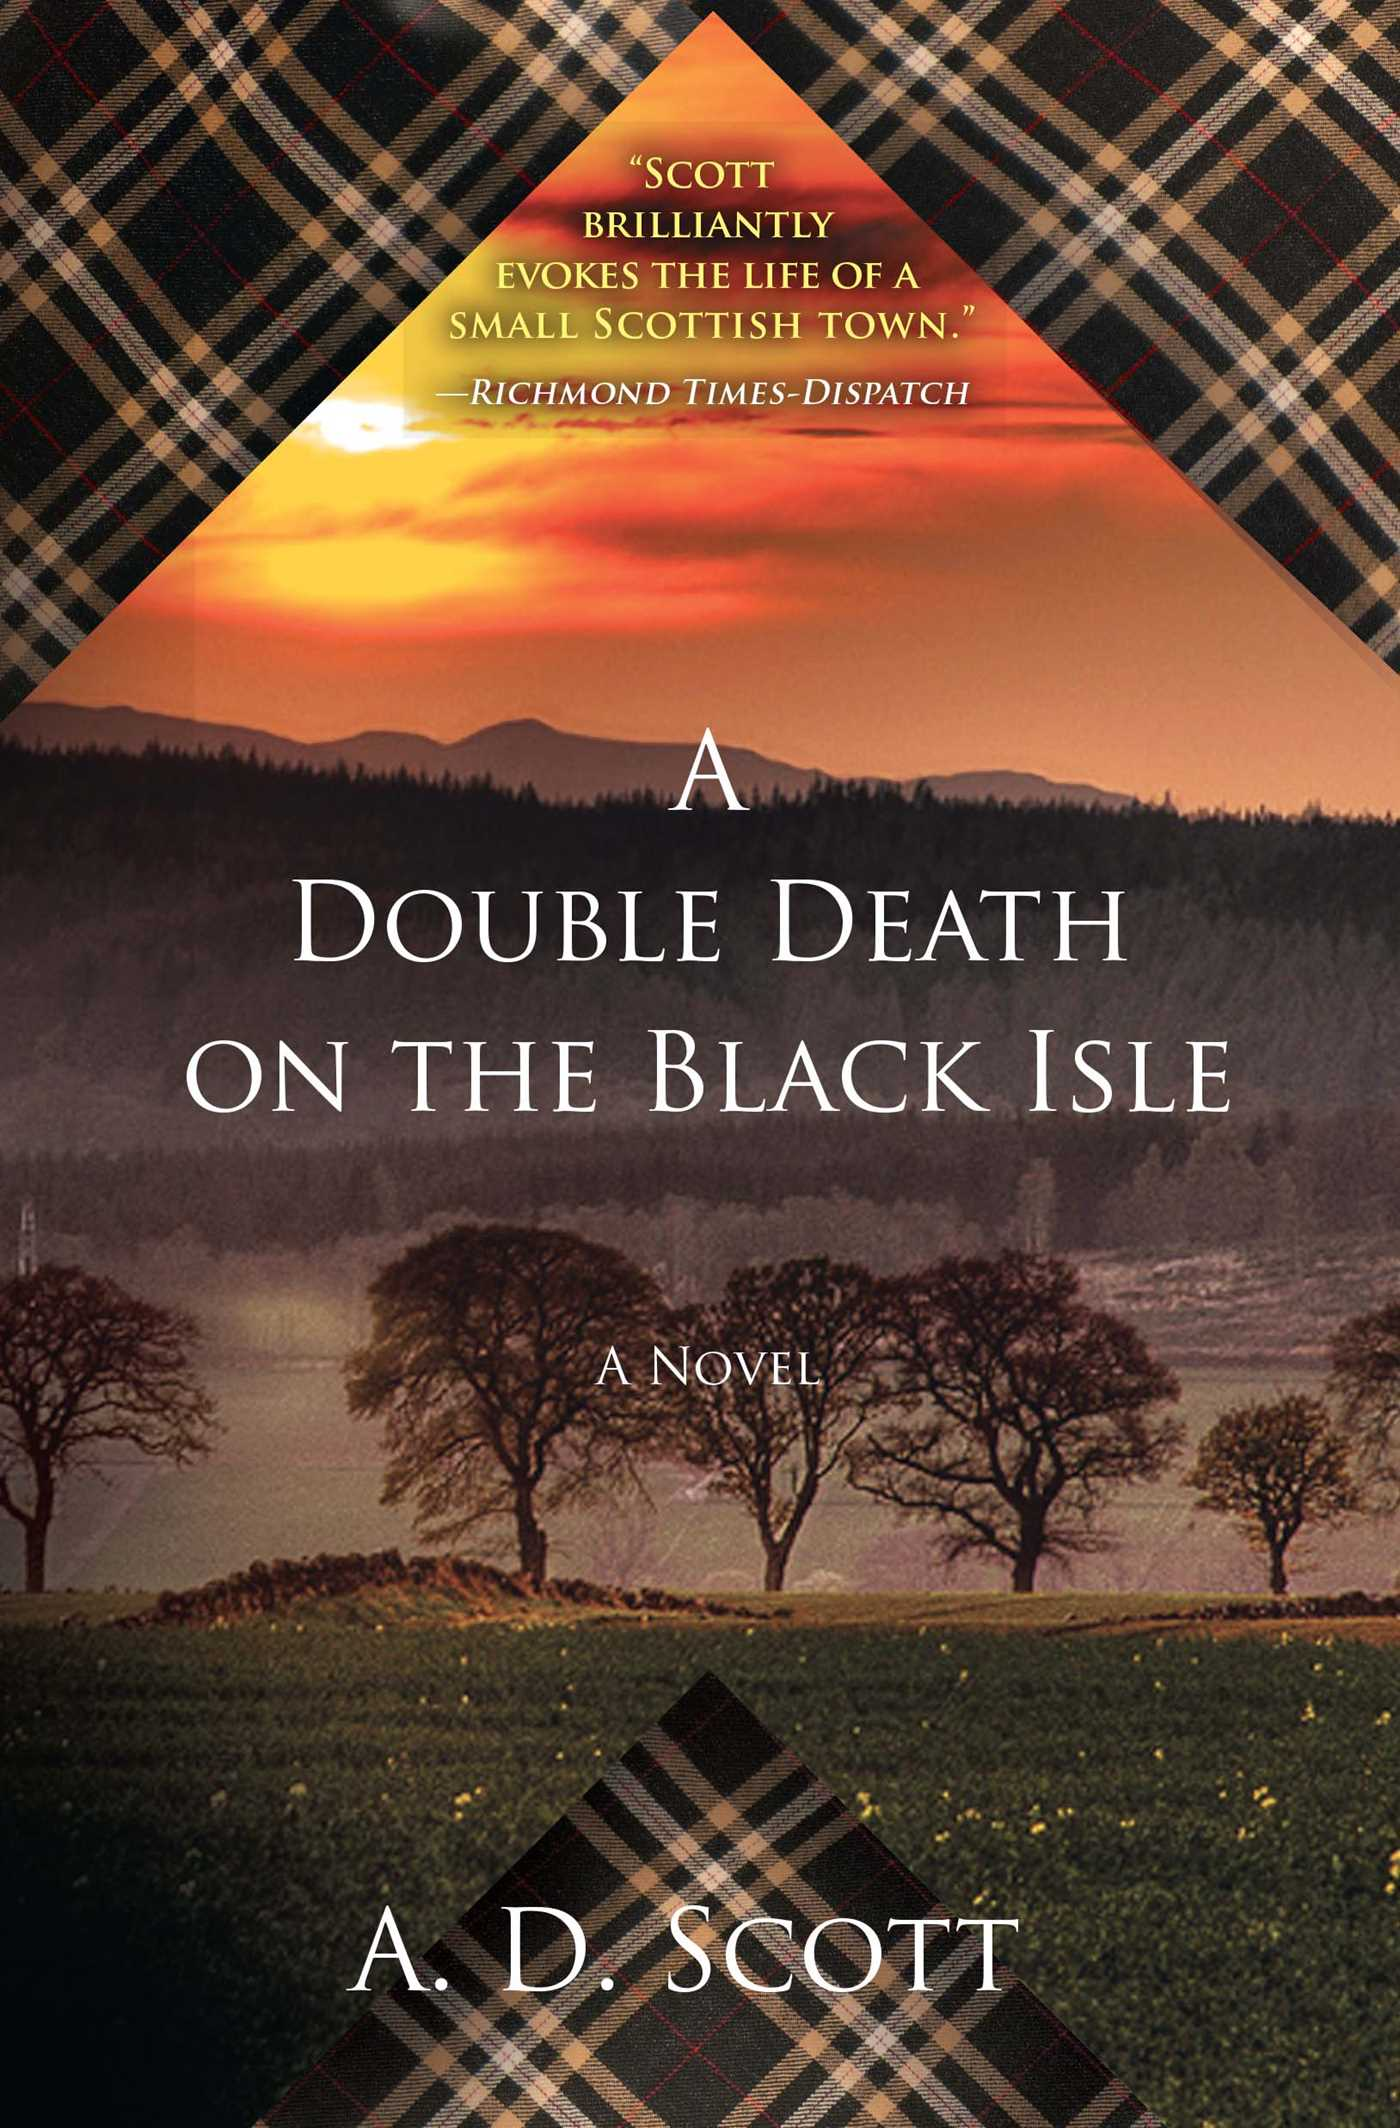 A-double-death-on-the-black-isle-9781439154946_hr